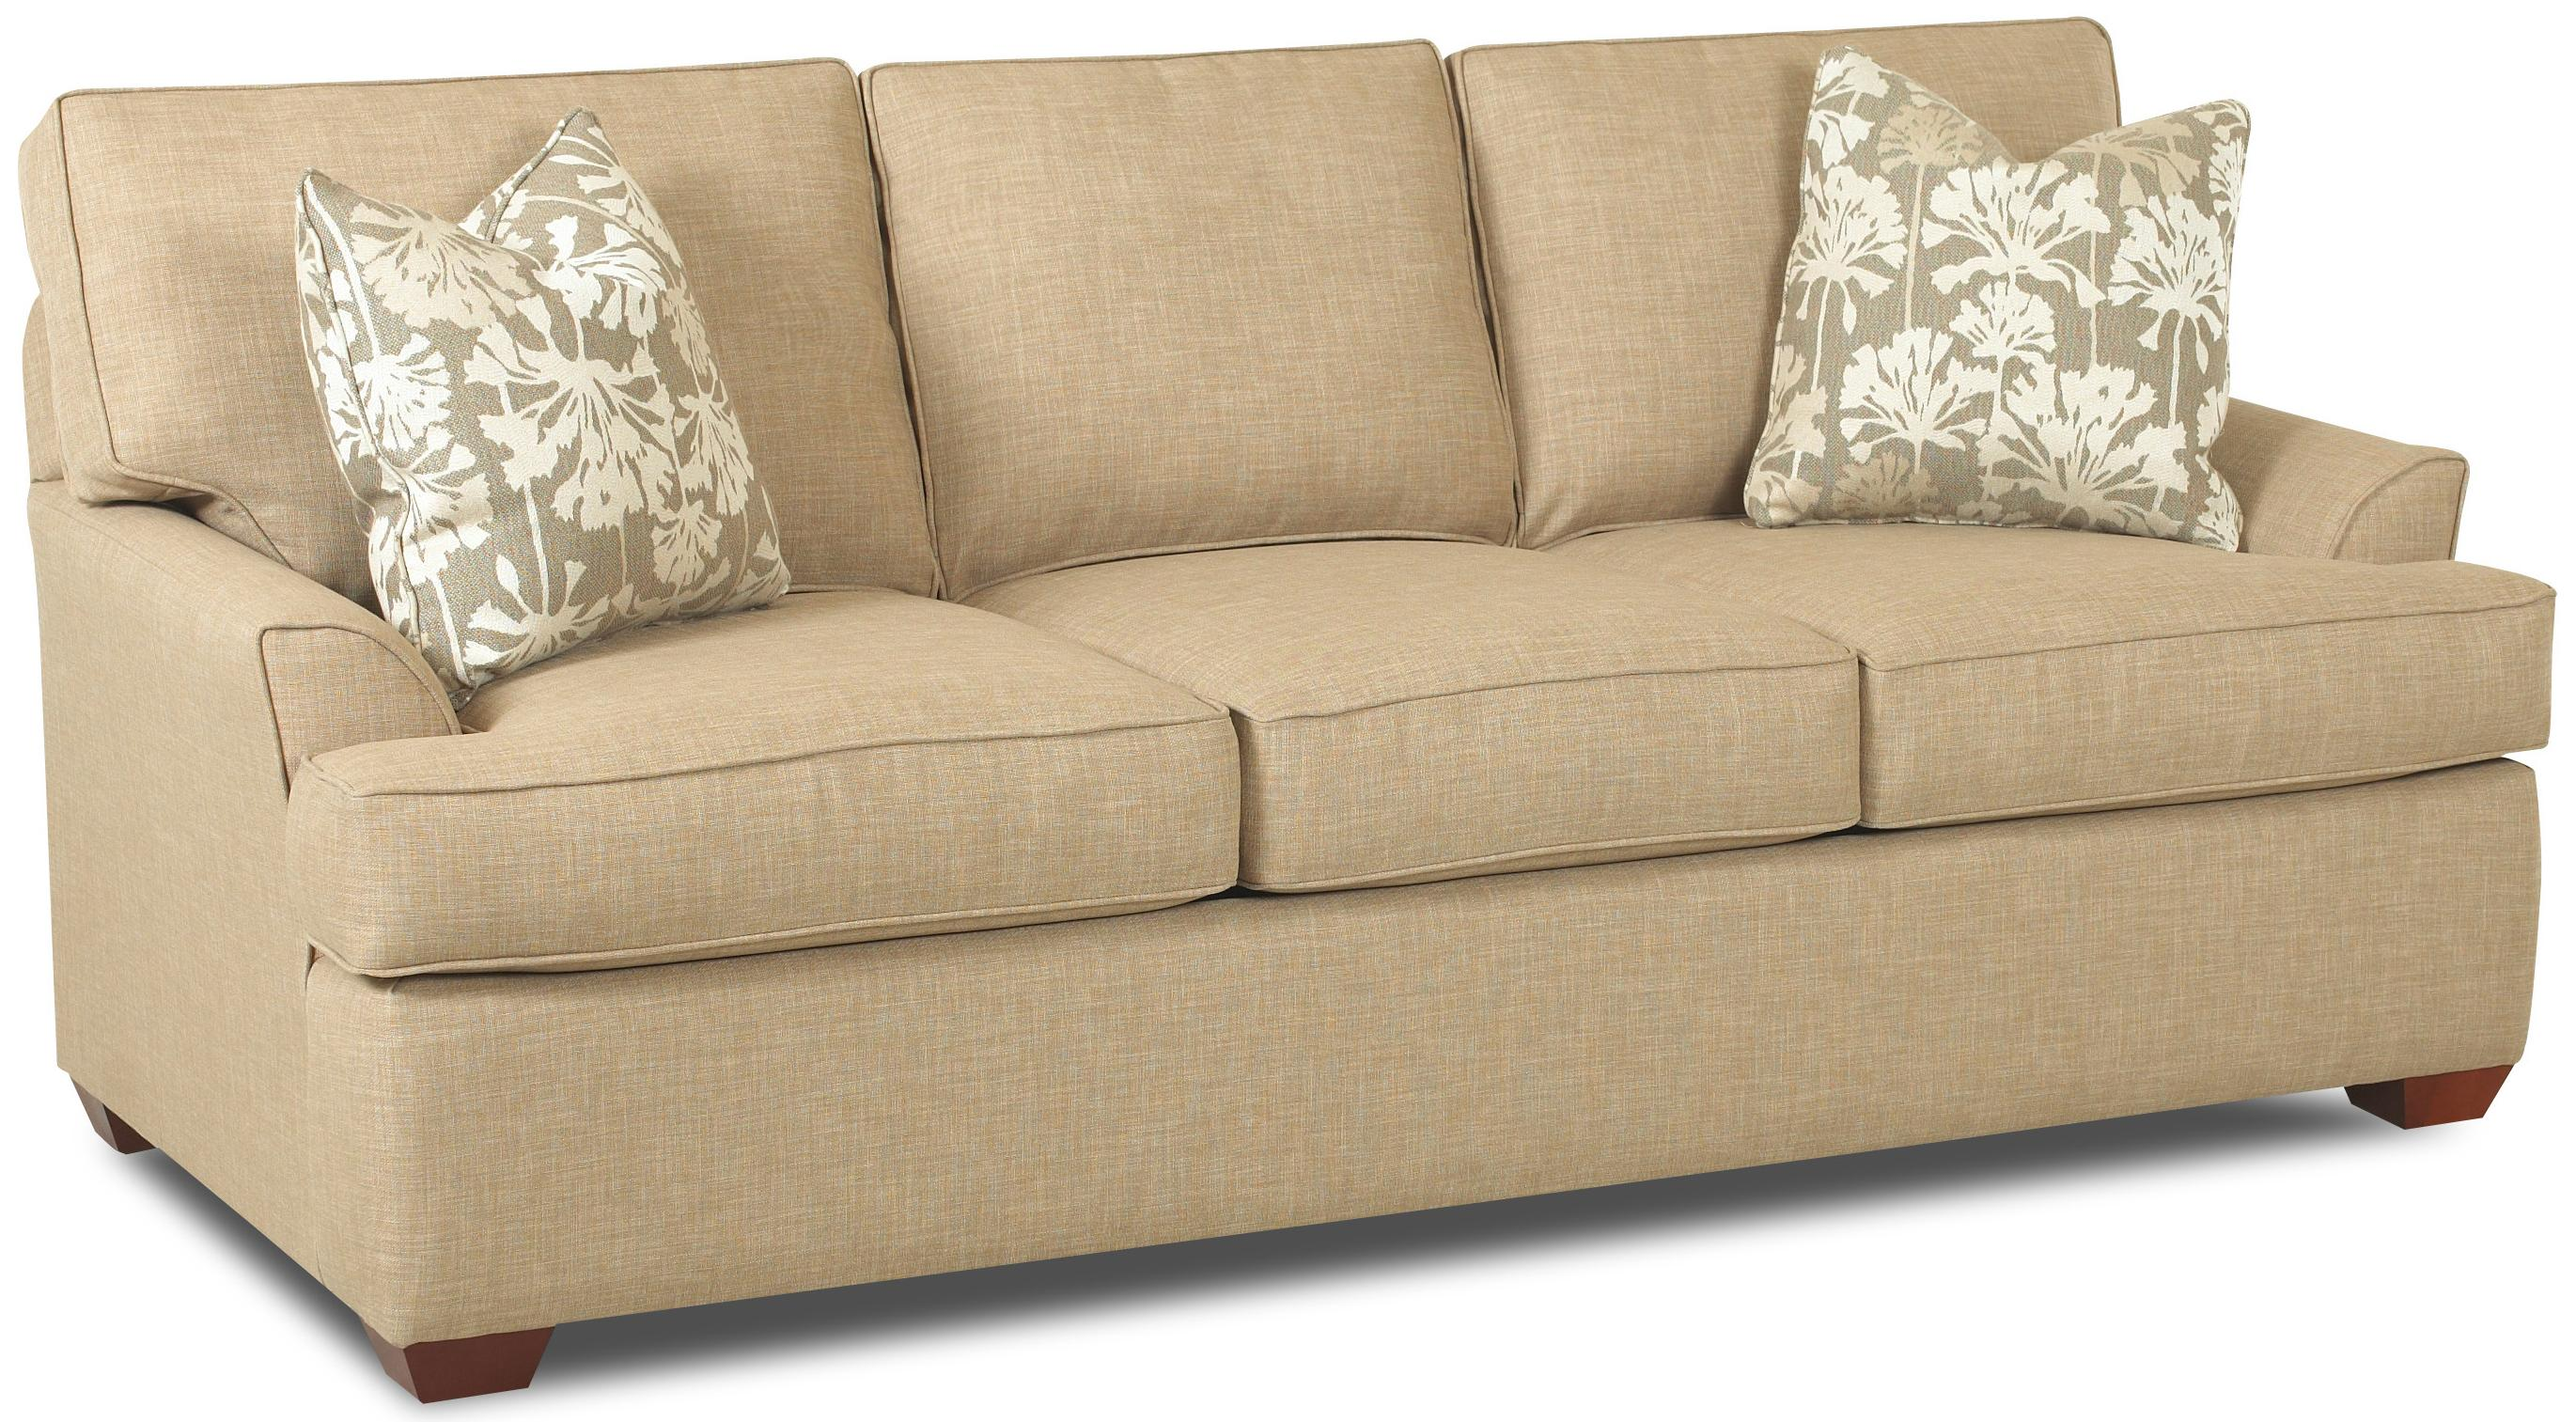 queen sofa bed no arms brooklyn contemporary 3 seat innerspring sleeper with